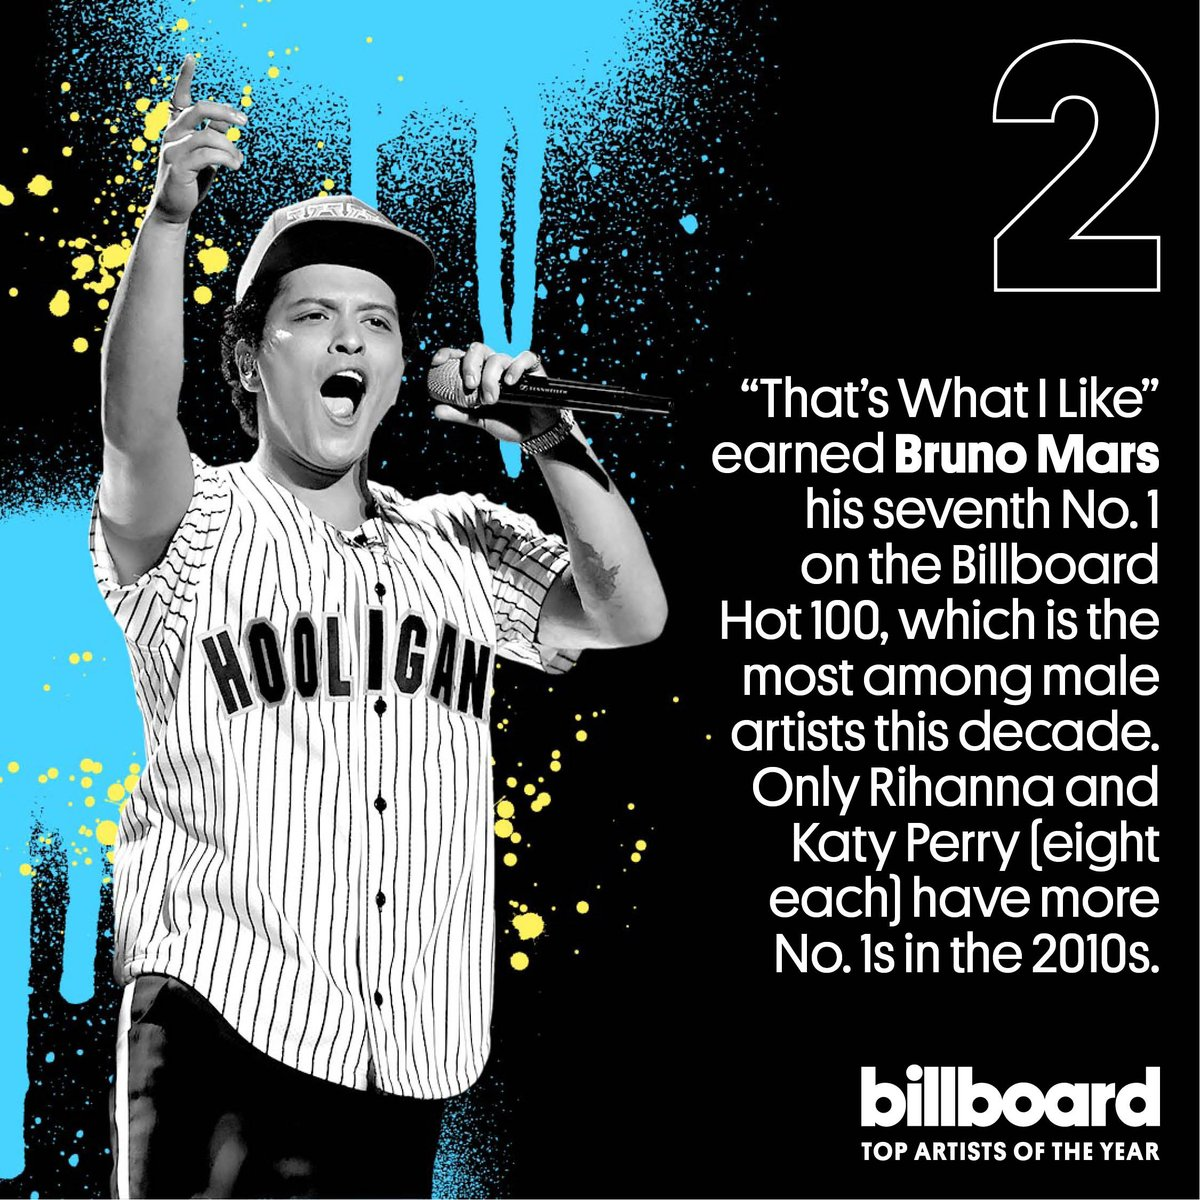 .@BrunoMars is No. 2 on our top artists of the year list! #YearInMusic https://t.co/PXpg4bHHj5 https://t.co/STEtWCBJfi